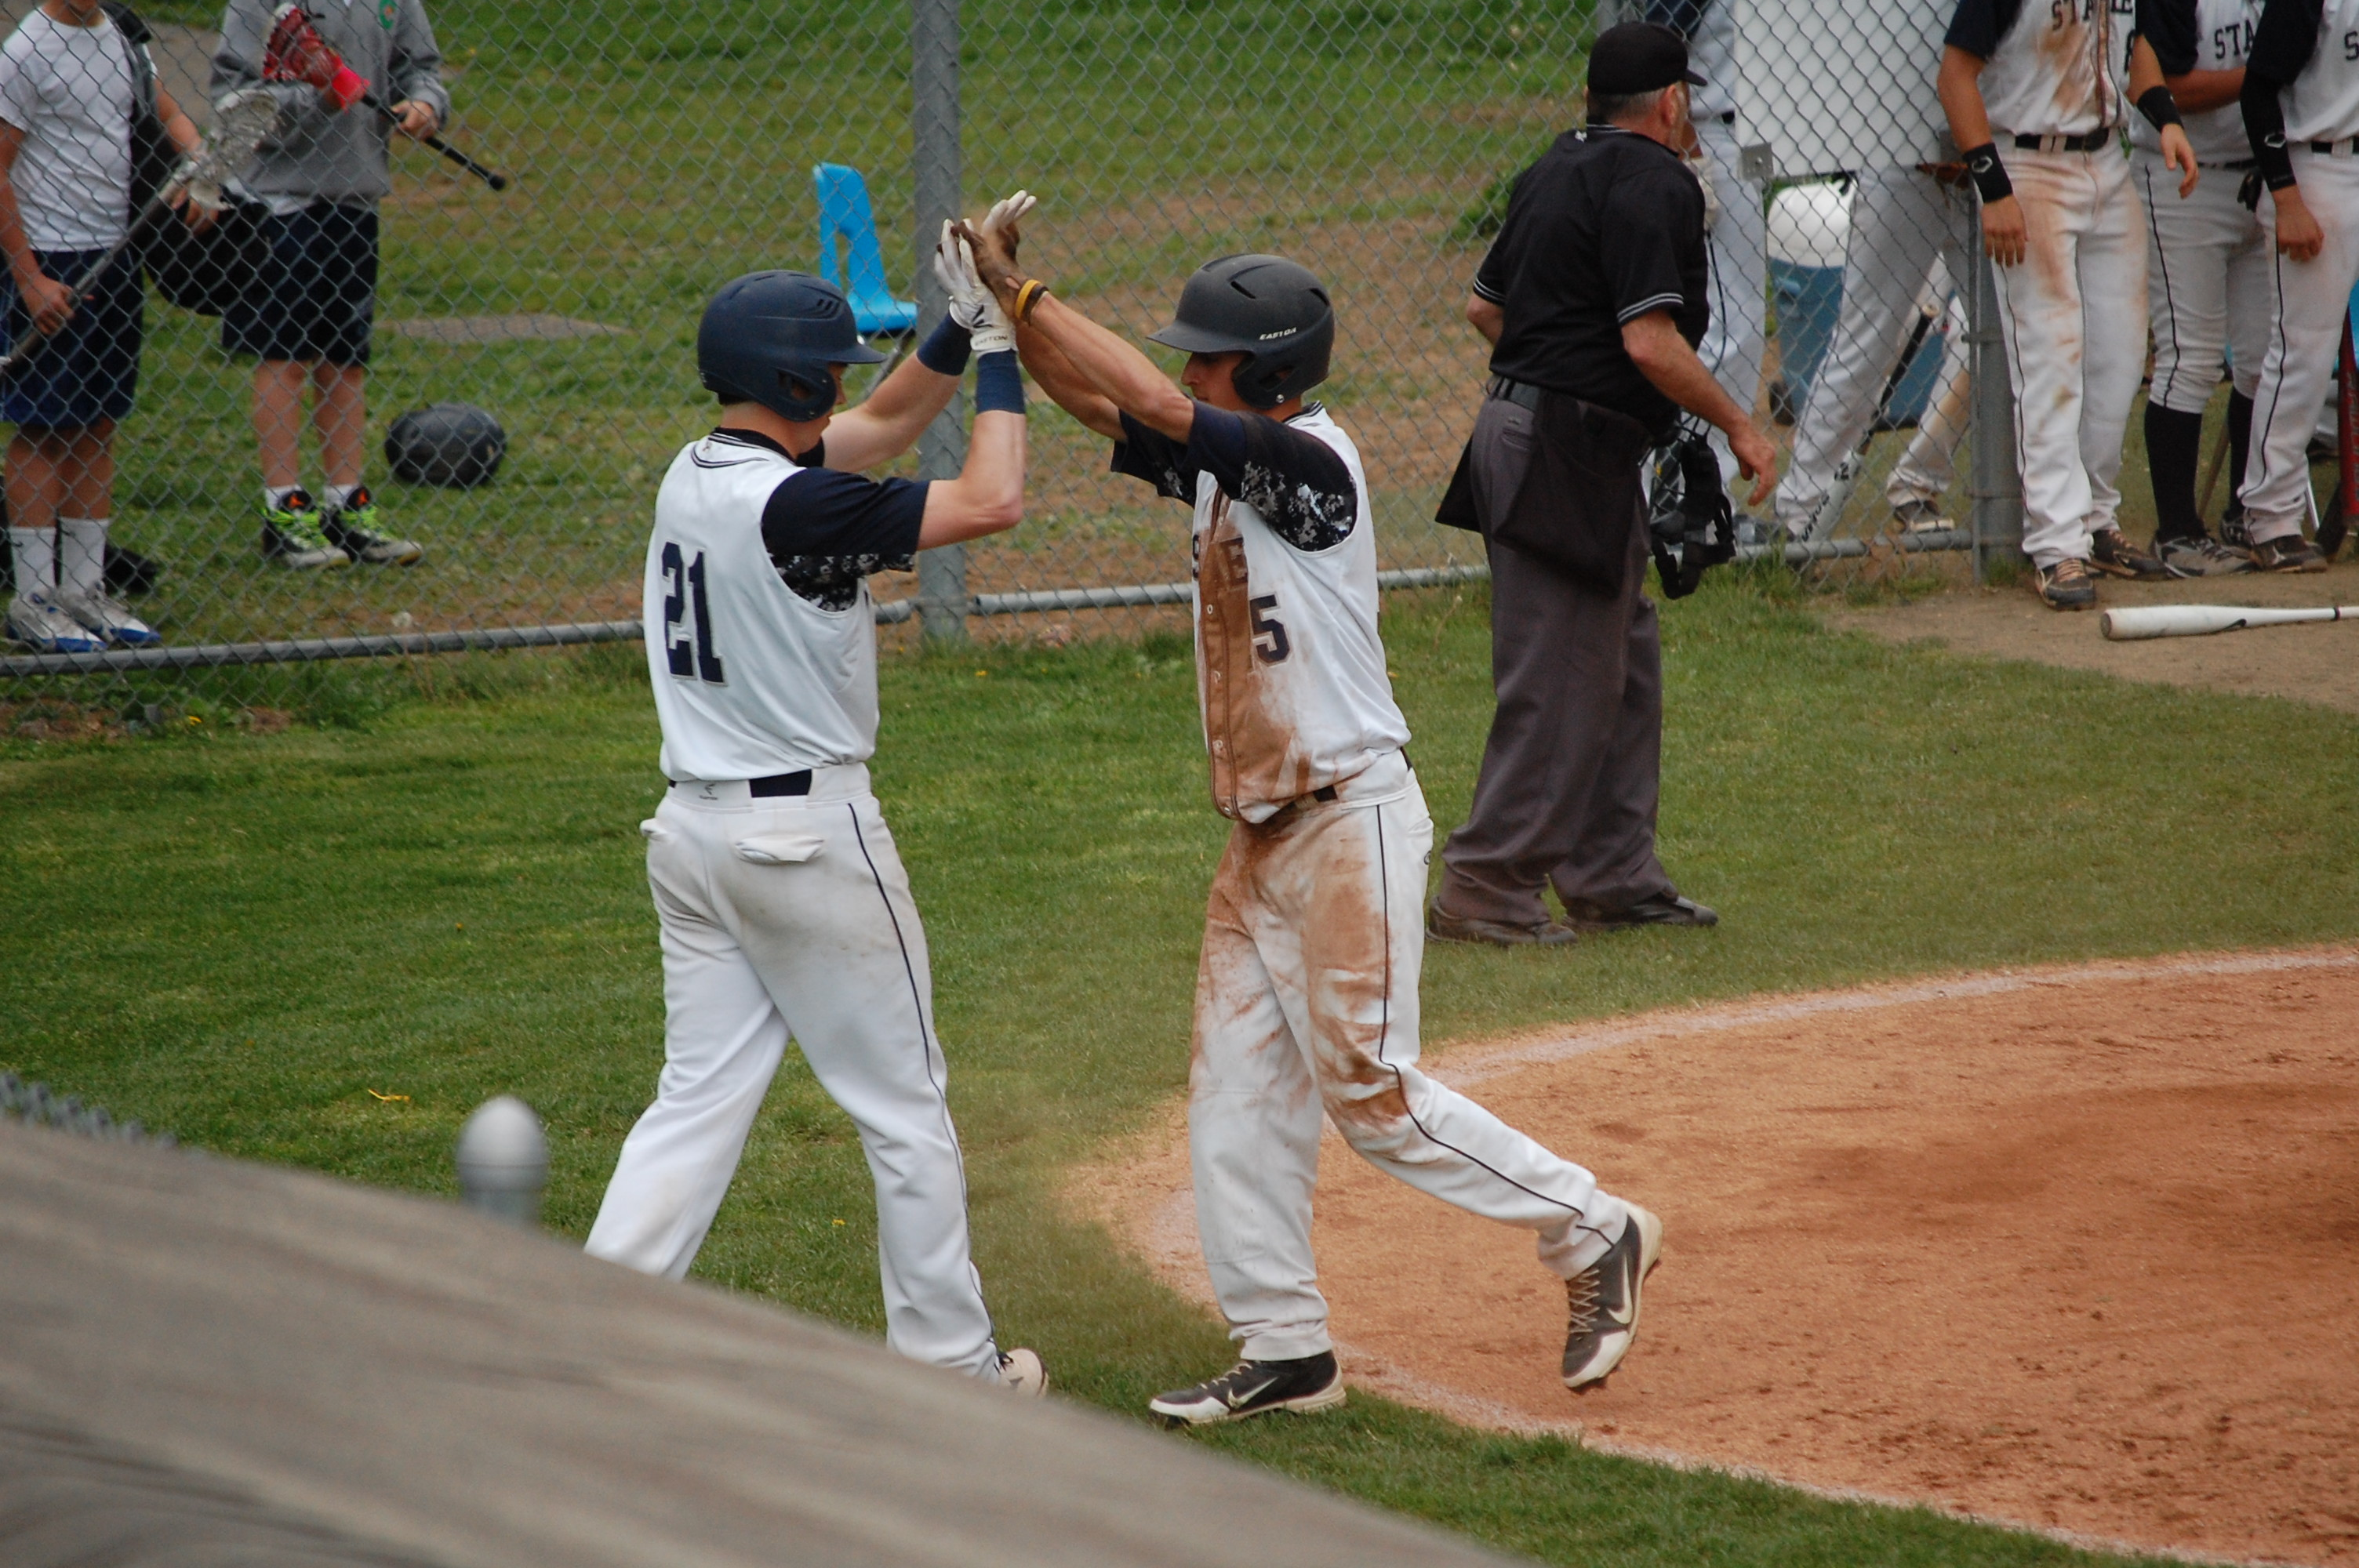 Andy Floyd scores tying run in the 6th !